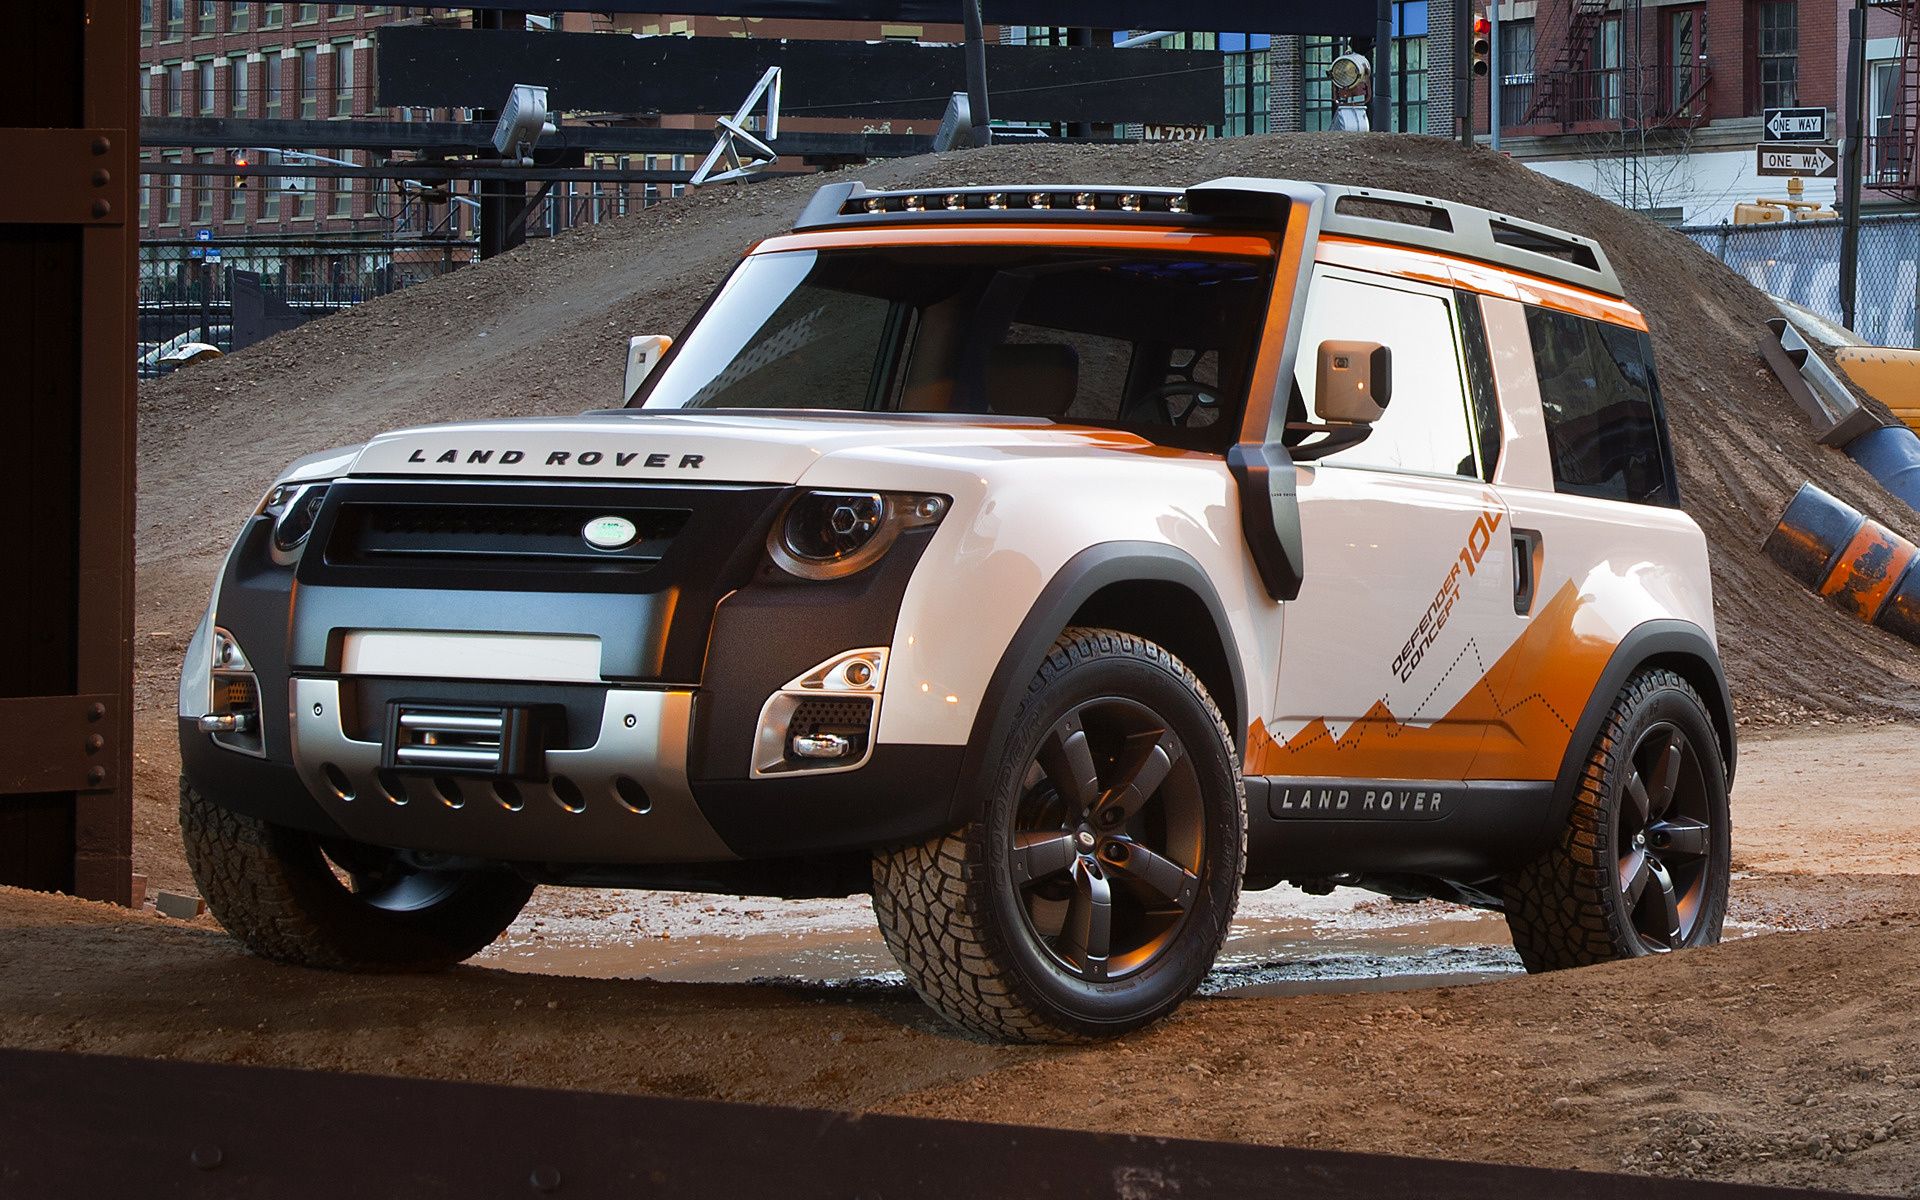 Land Rover Dc 100 >> Land Rover DC100 Expedition Concept (2012) Wallpapers and HD Images - Car Pixel